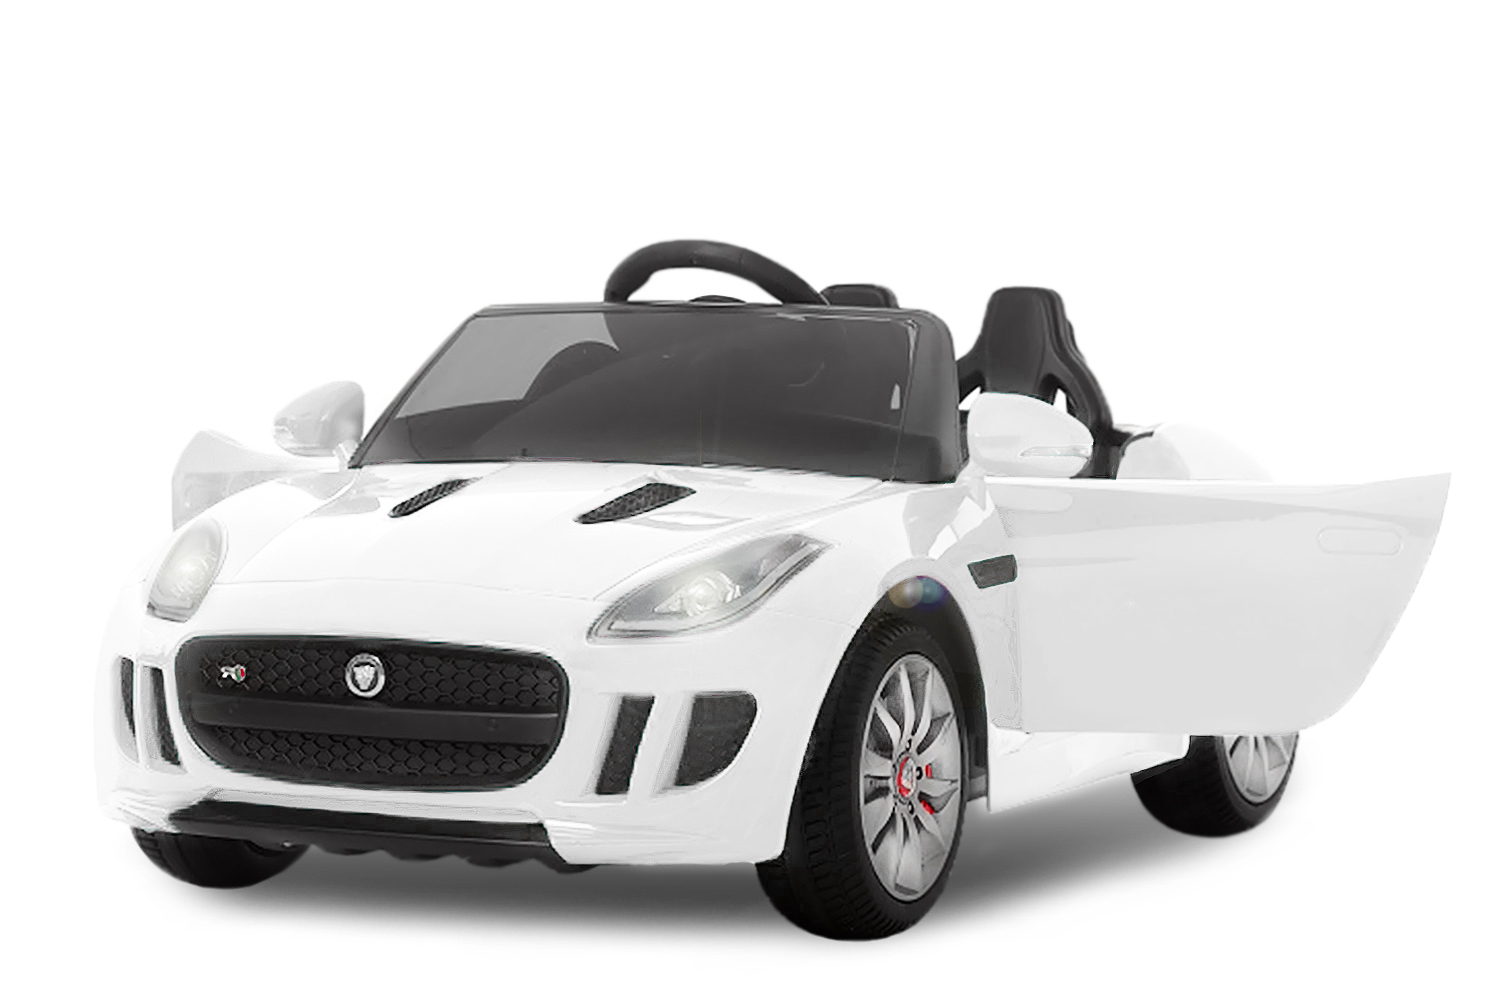 kidcars kinder elektroautos mit akku kinder elektro auto jaguar f type 2x 35w 12v. Black Bedroom Furniture Sets. Home Design Ideas